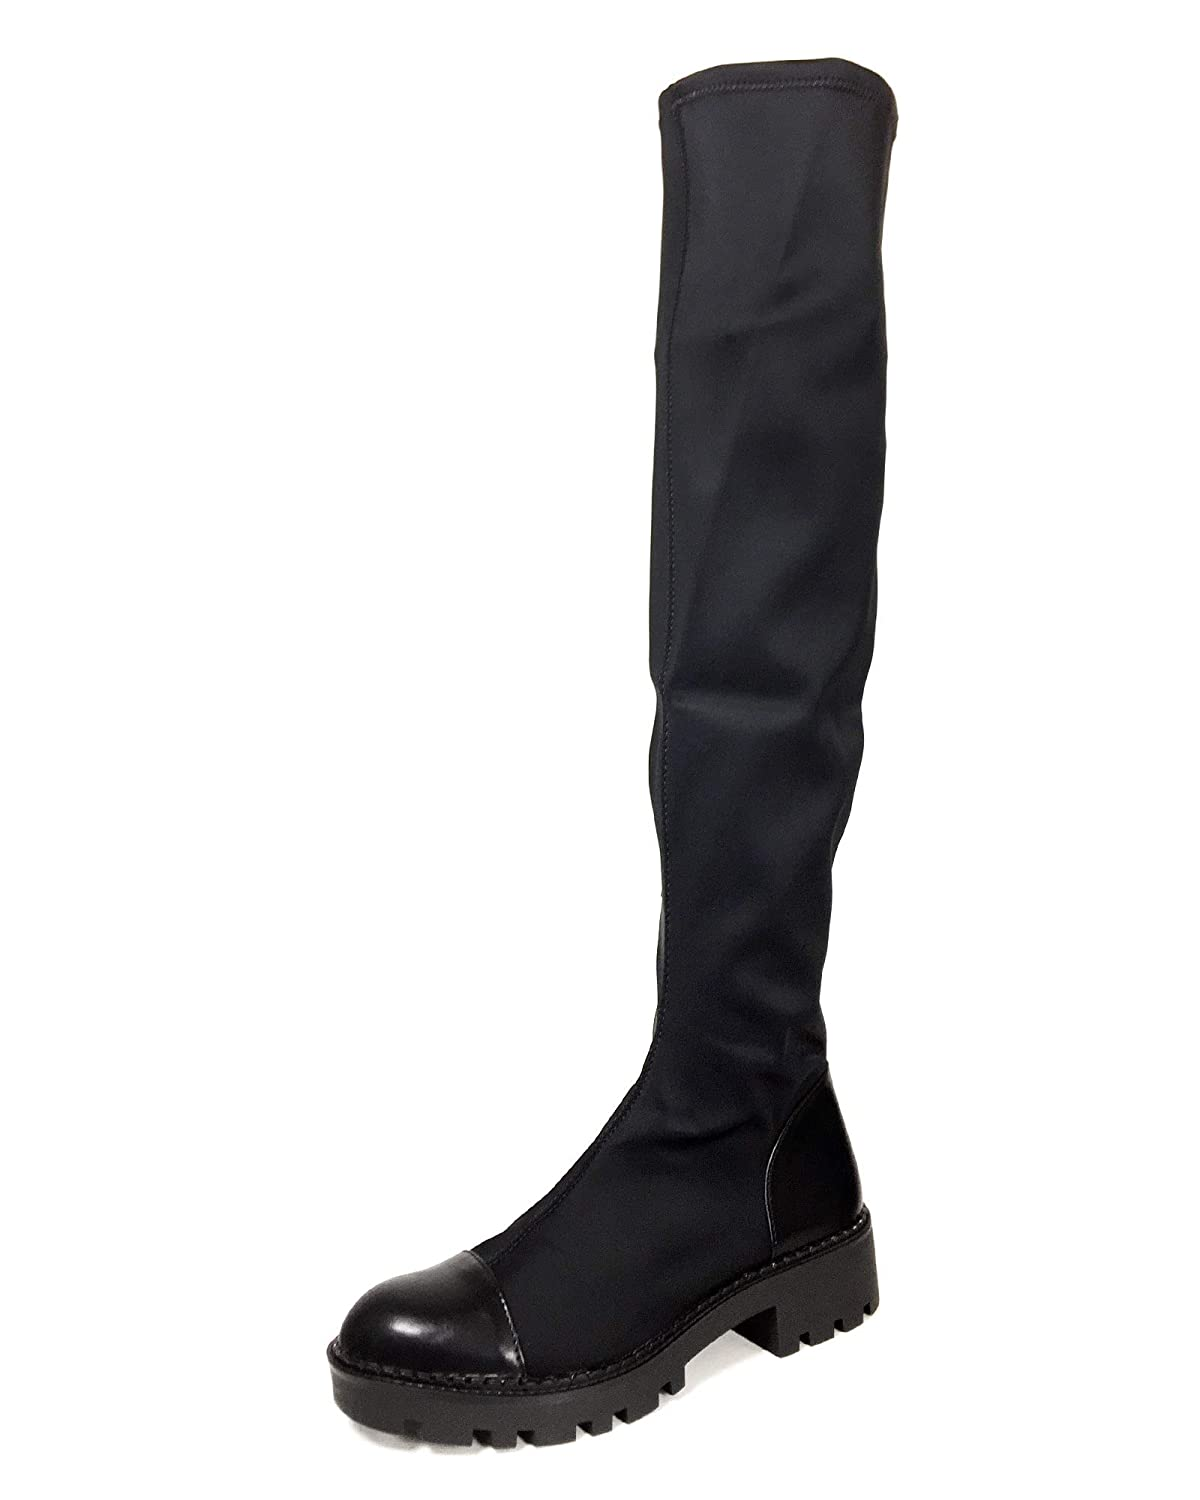 d93e1a64444 Zara Women s Track Sole Tall Boots 7050 301  Amazon.co.uk  Shoes   Bags